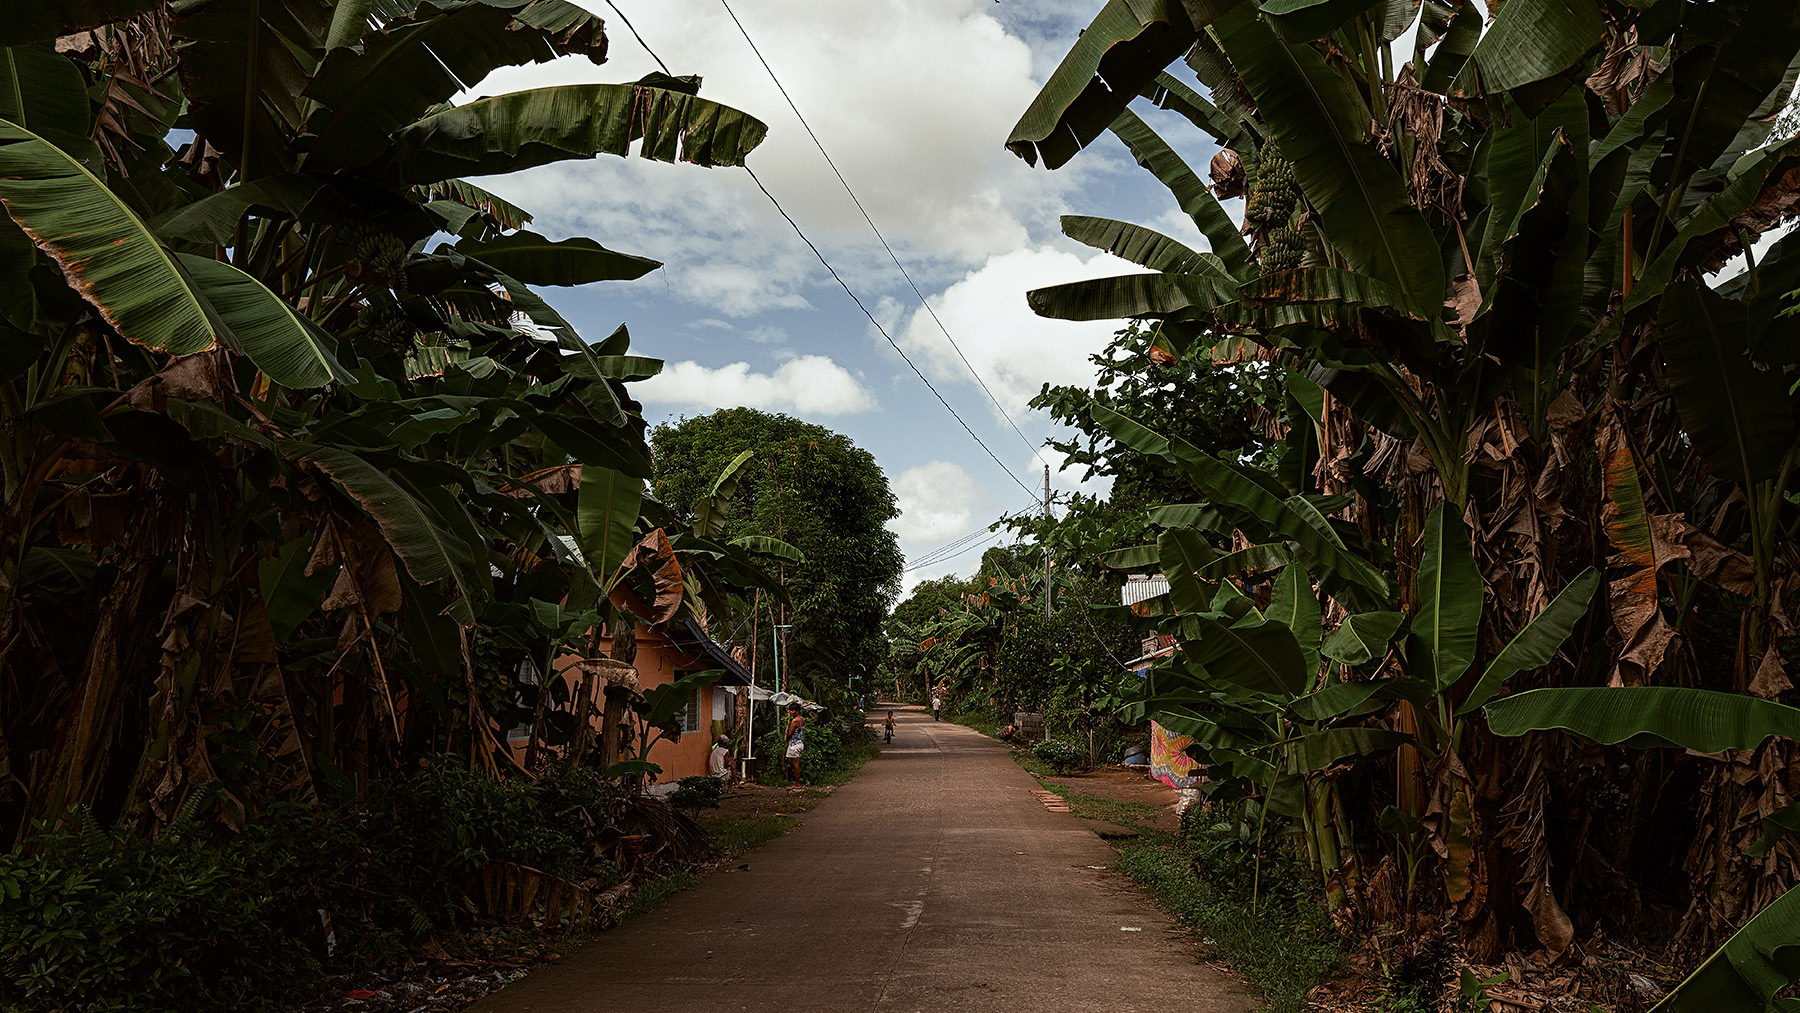 Good Boy Wolf Photographer, filmic landscape, Philippines, tall banana trees